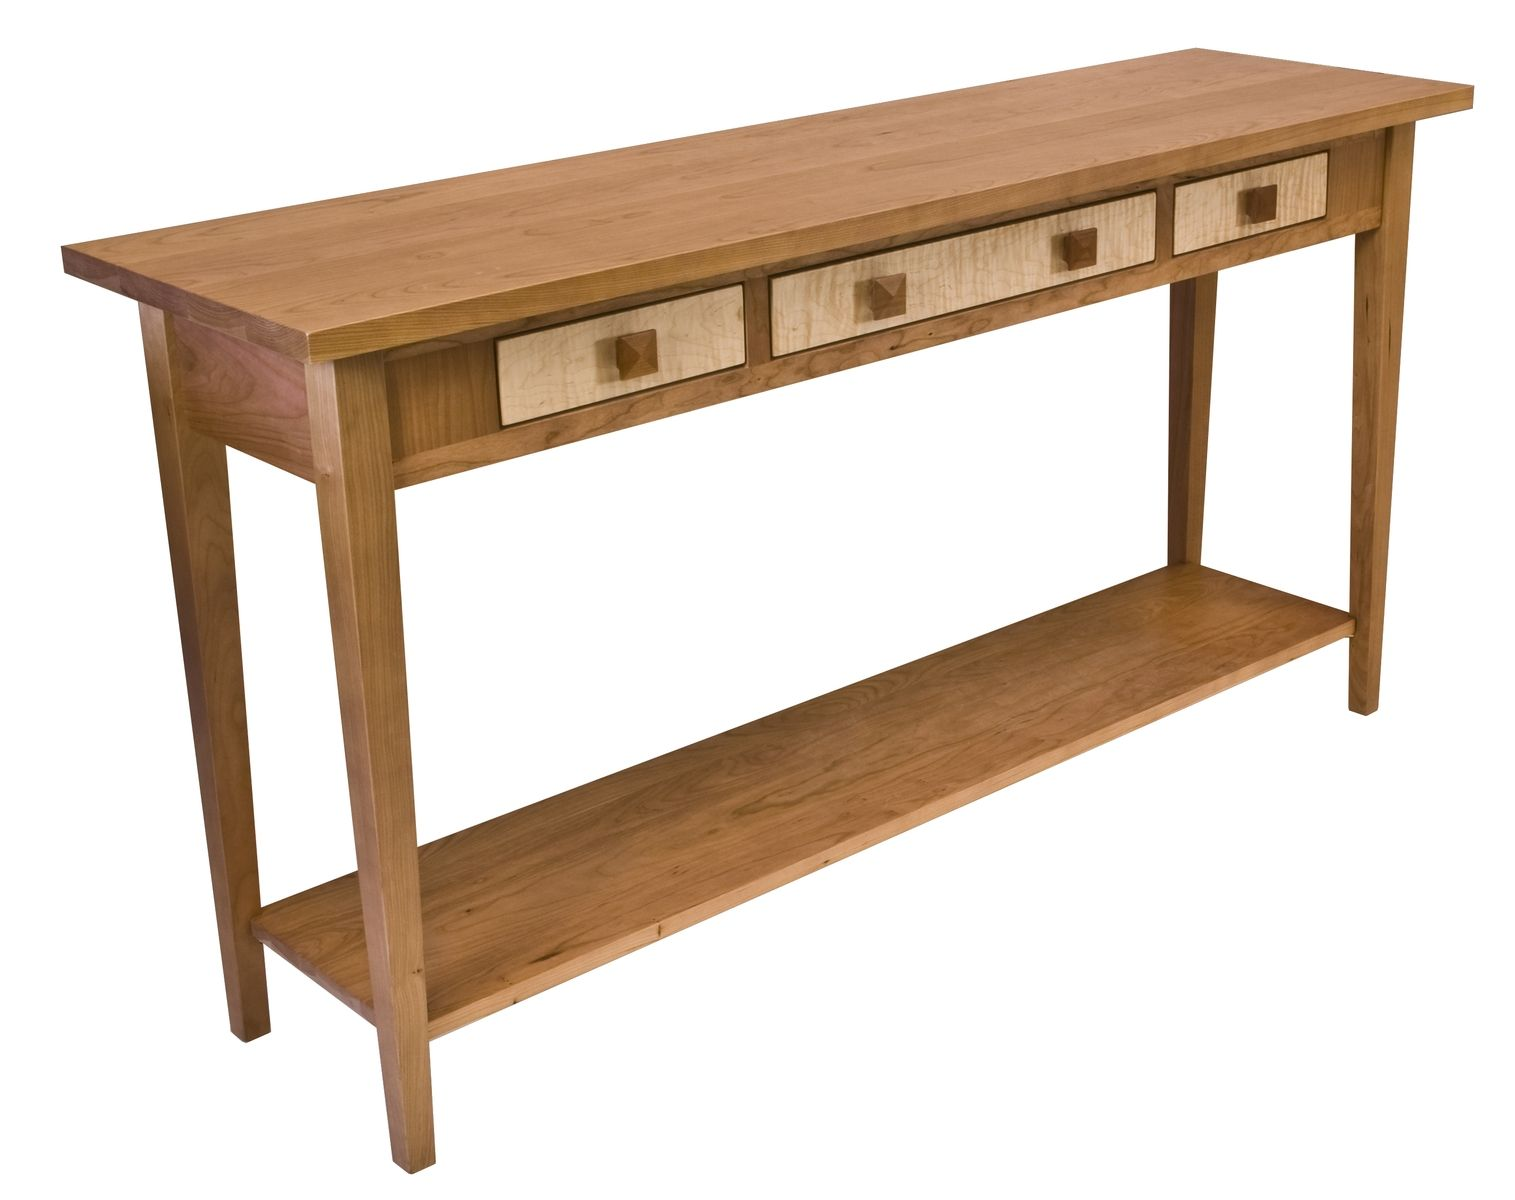 Custom Cherry Sofa Table With Curly Maple Drawers Rustic Console Tables Table Woodworking Table